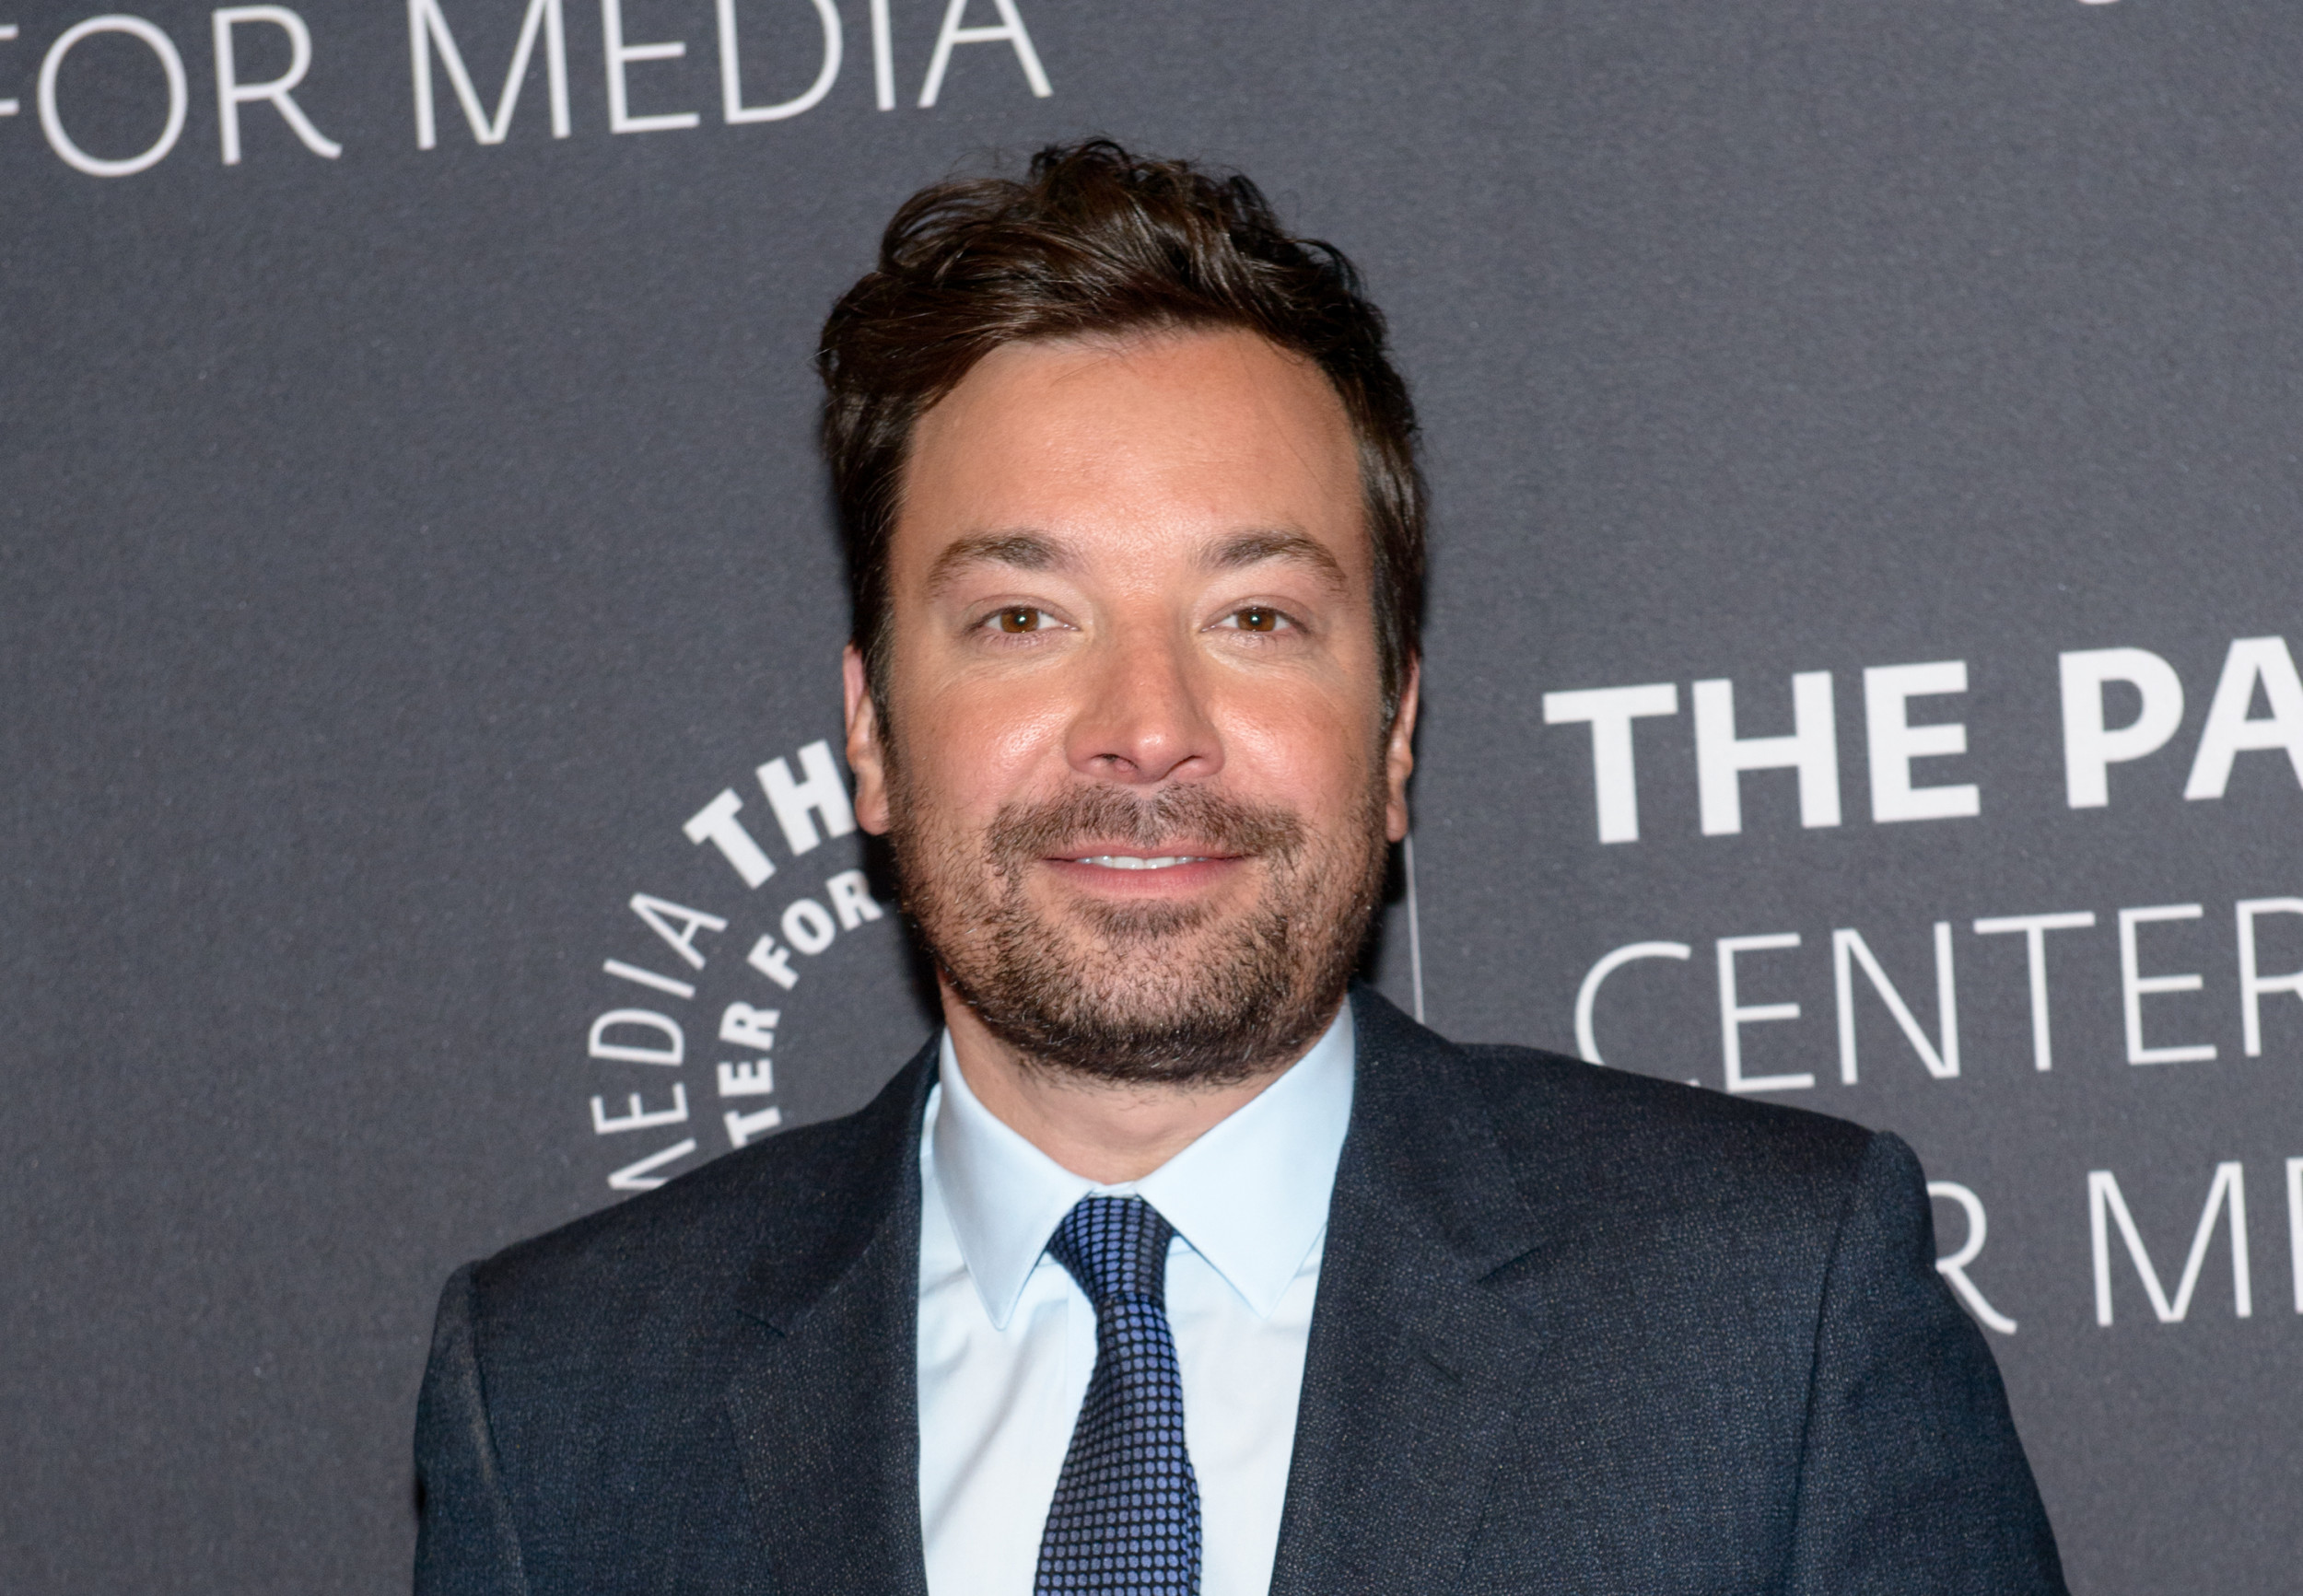 Jimmy Fallon Mocks Sidney Powell's Firing From Trump's Lawful Group For 'Being Too Loopy'